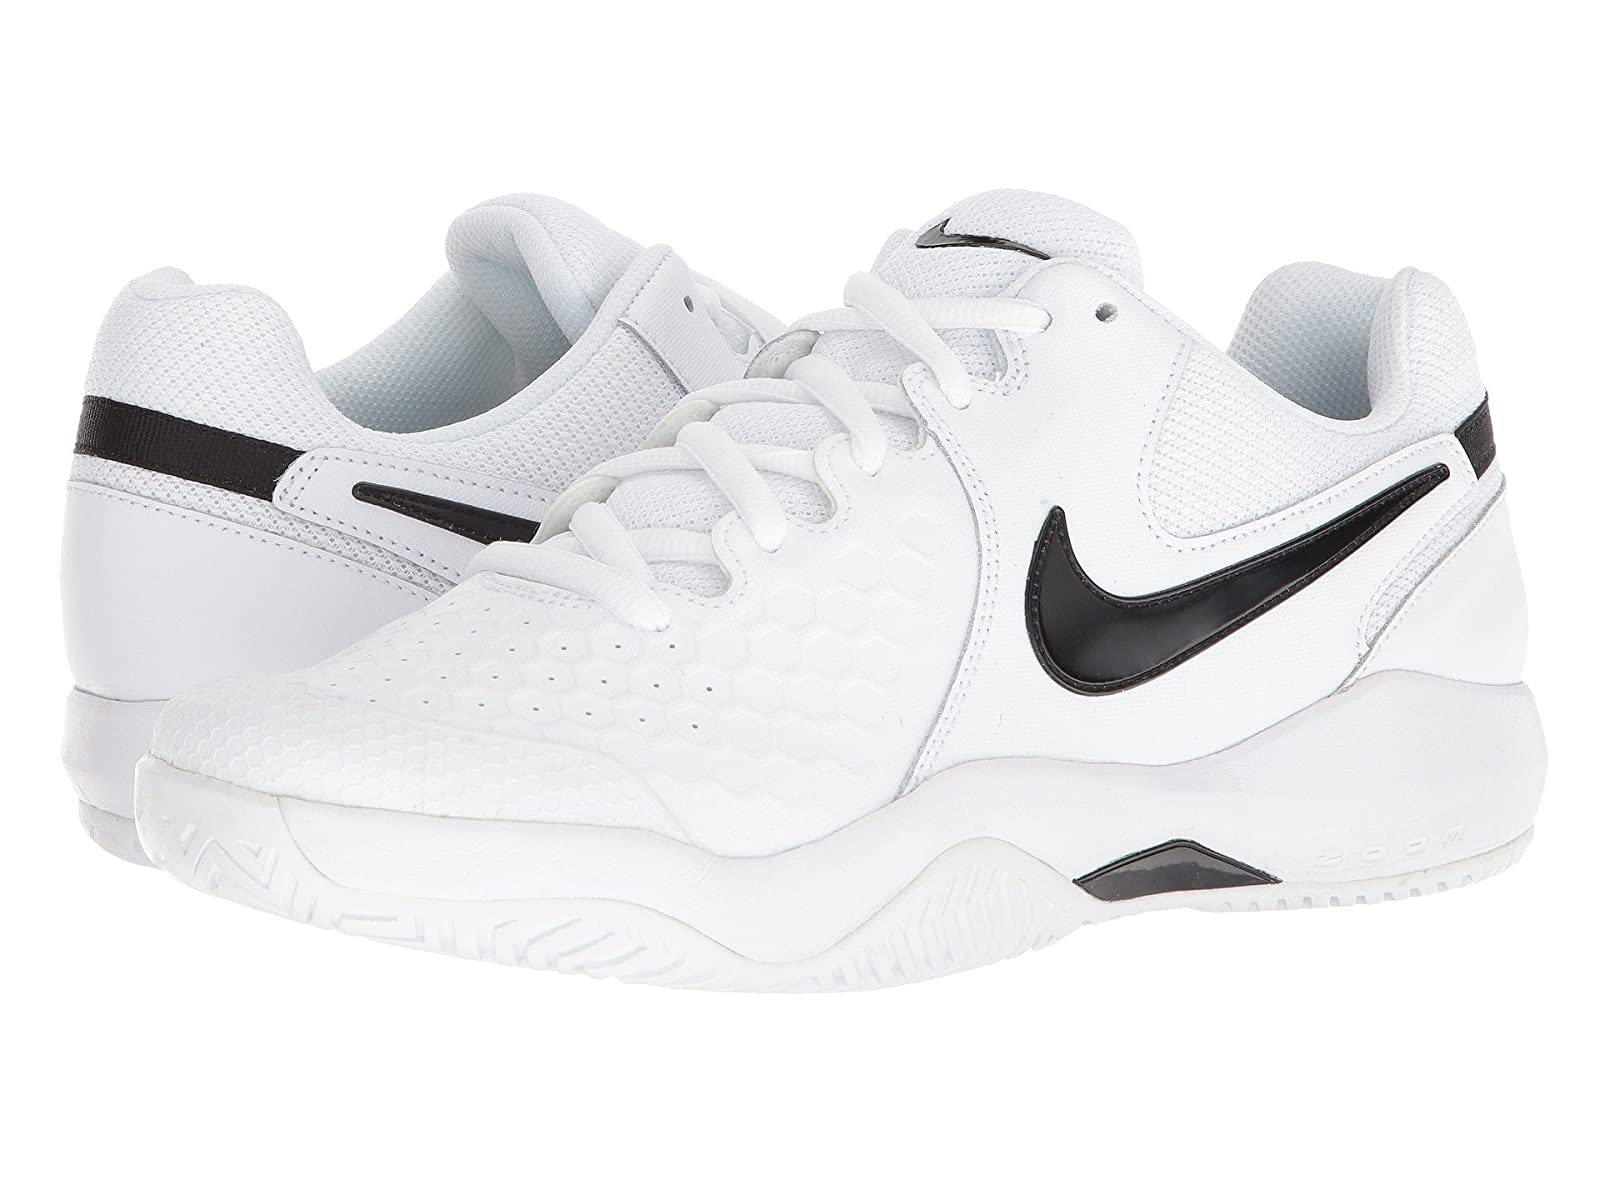 Nike Air Zoom ResistanceAtmospheric grades have affordable shoes